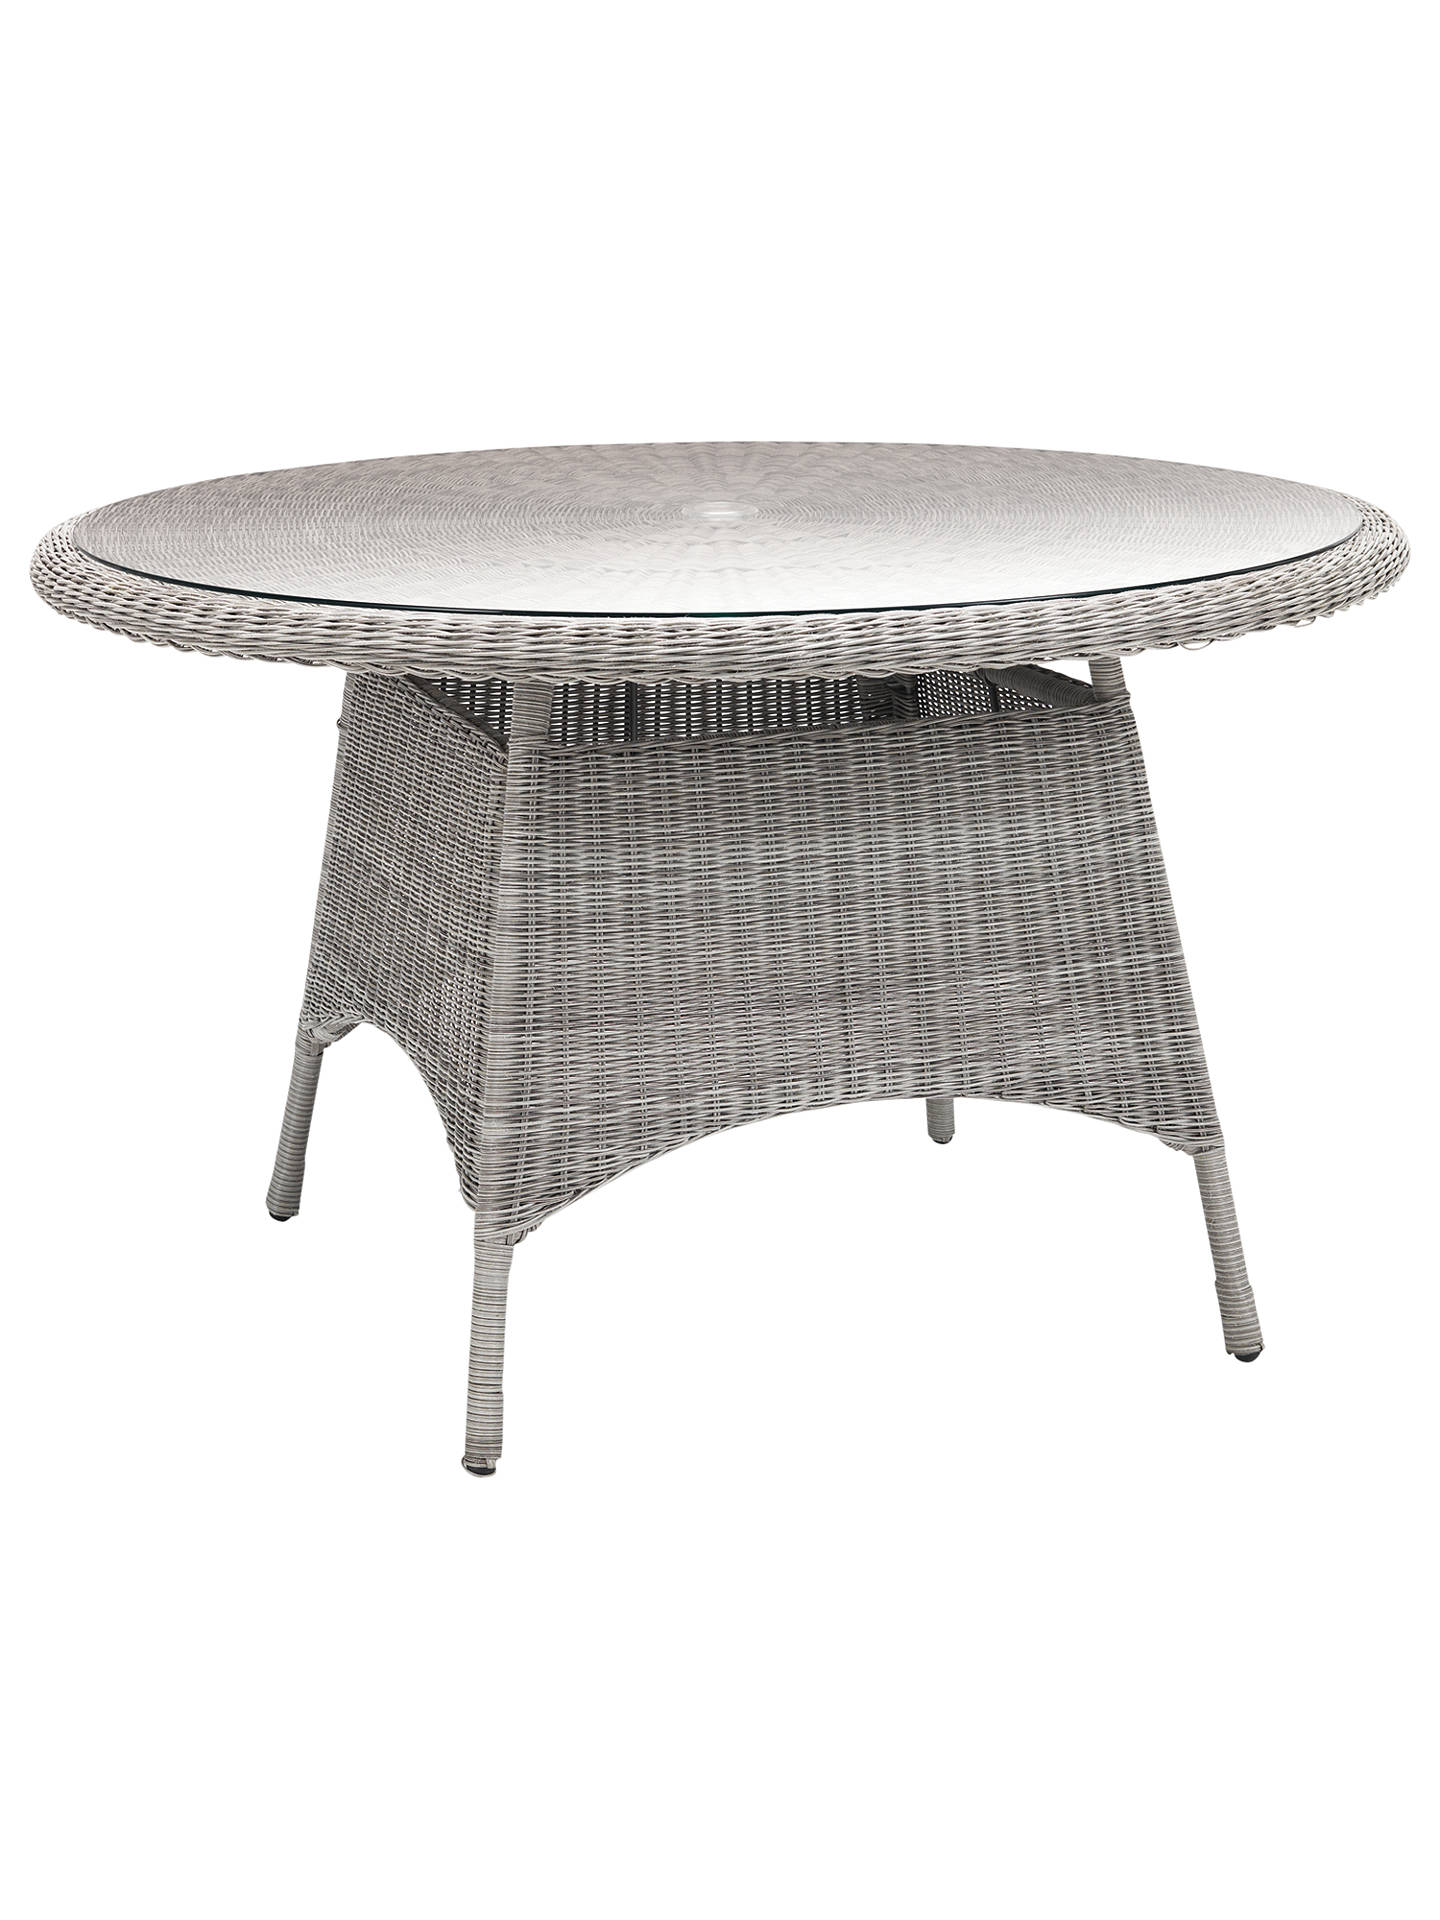 Synthetic Wicker Outdoor Dining Table